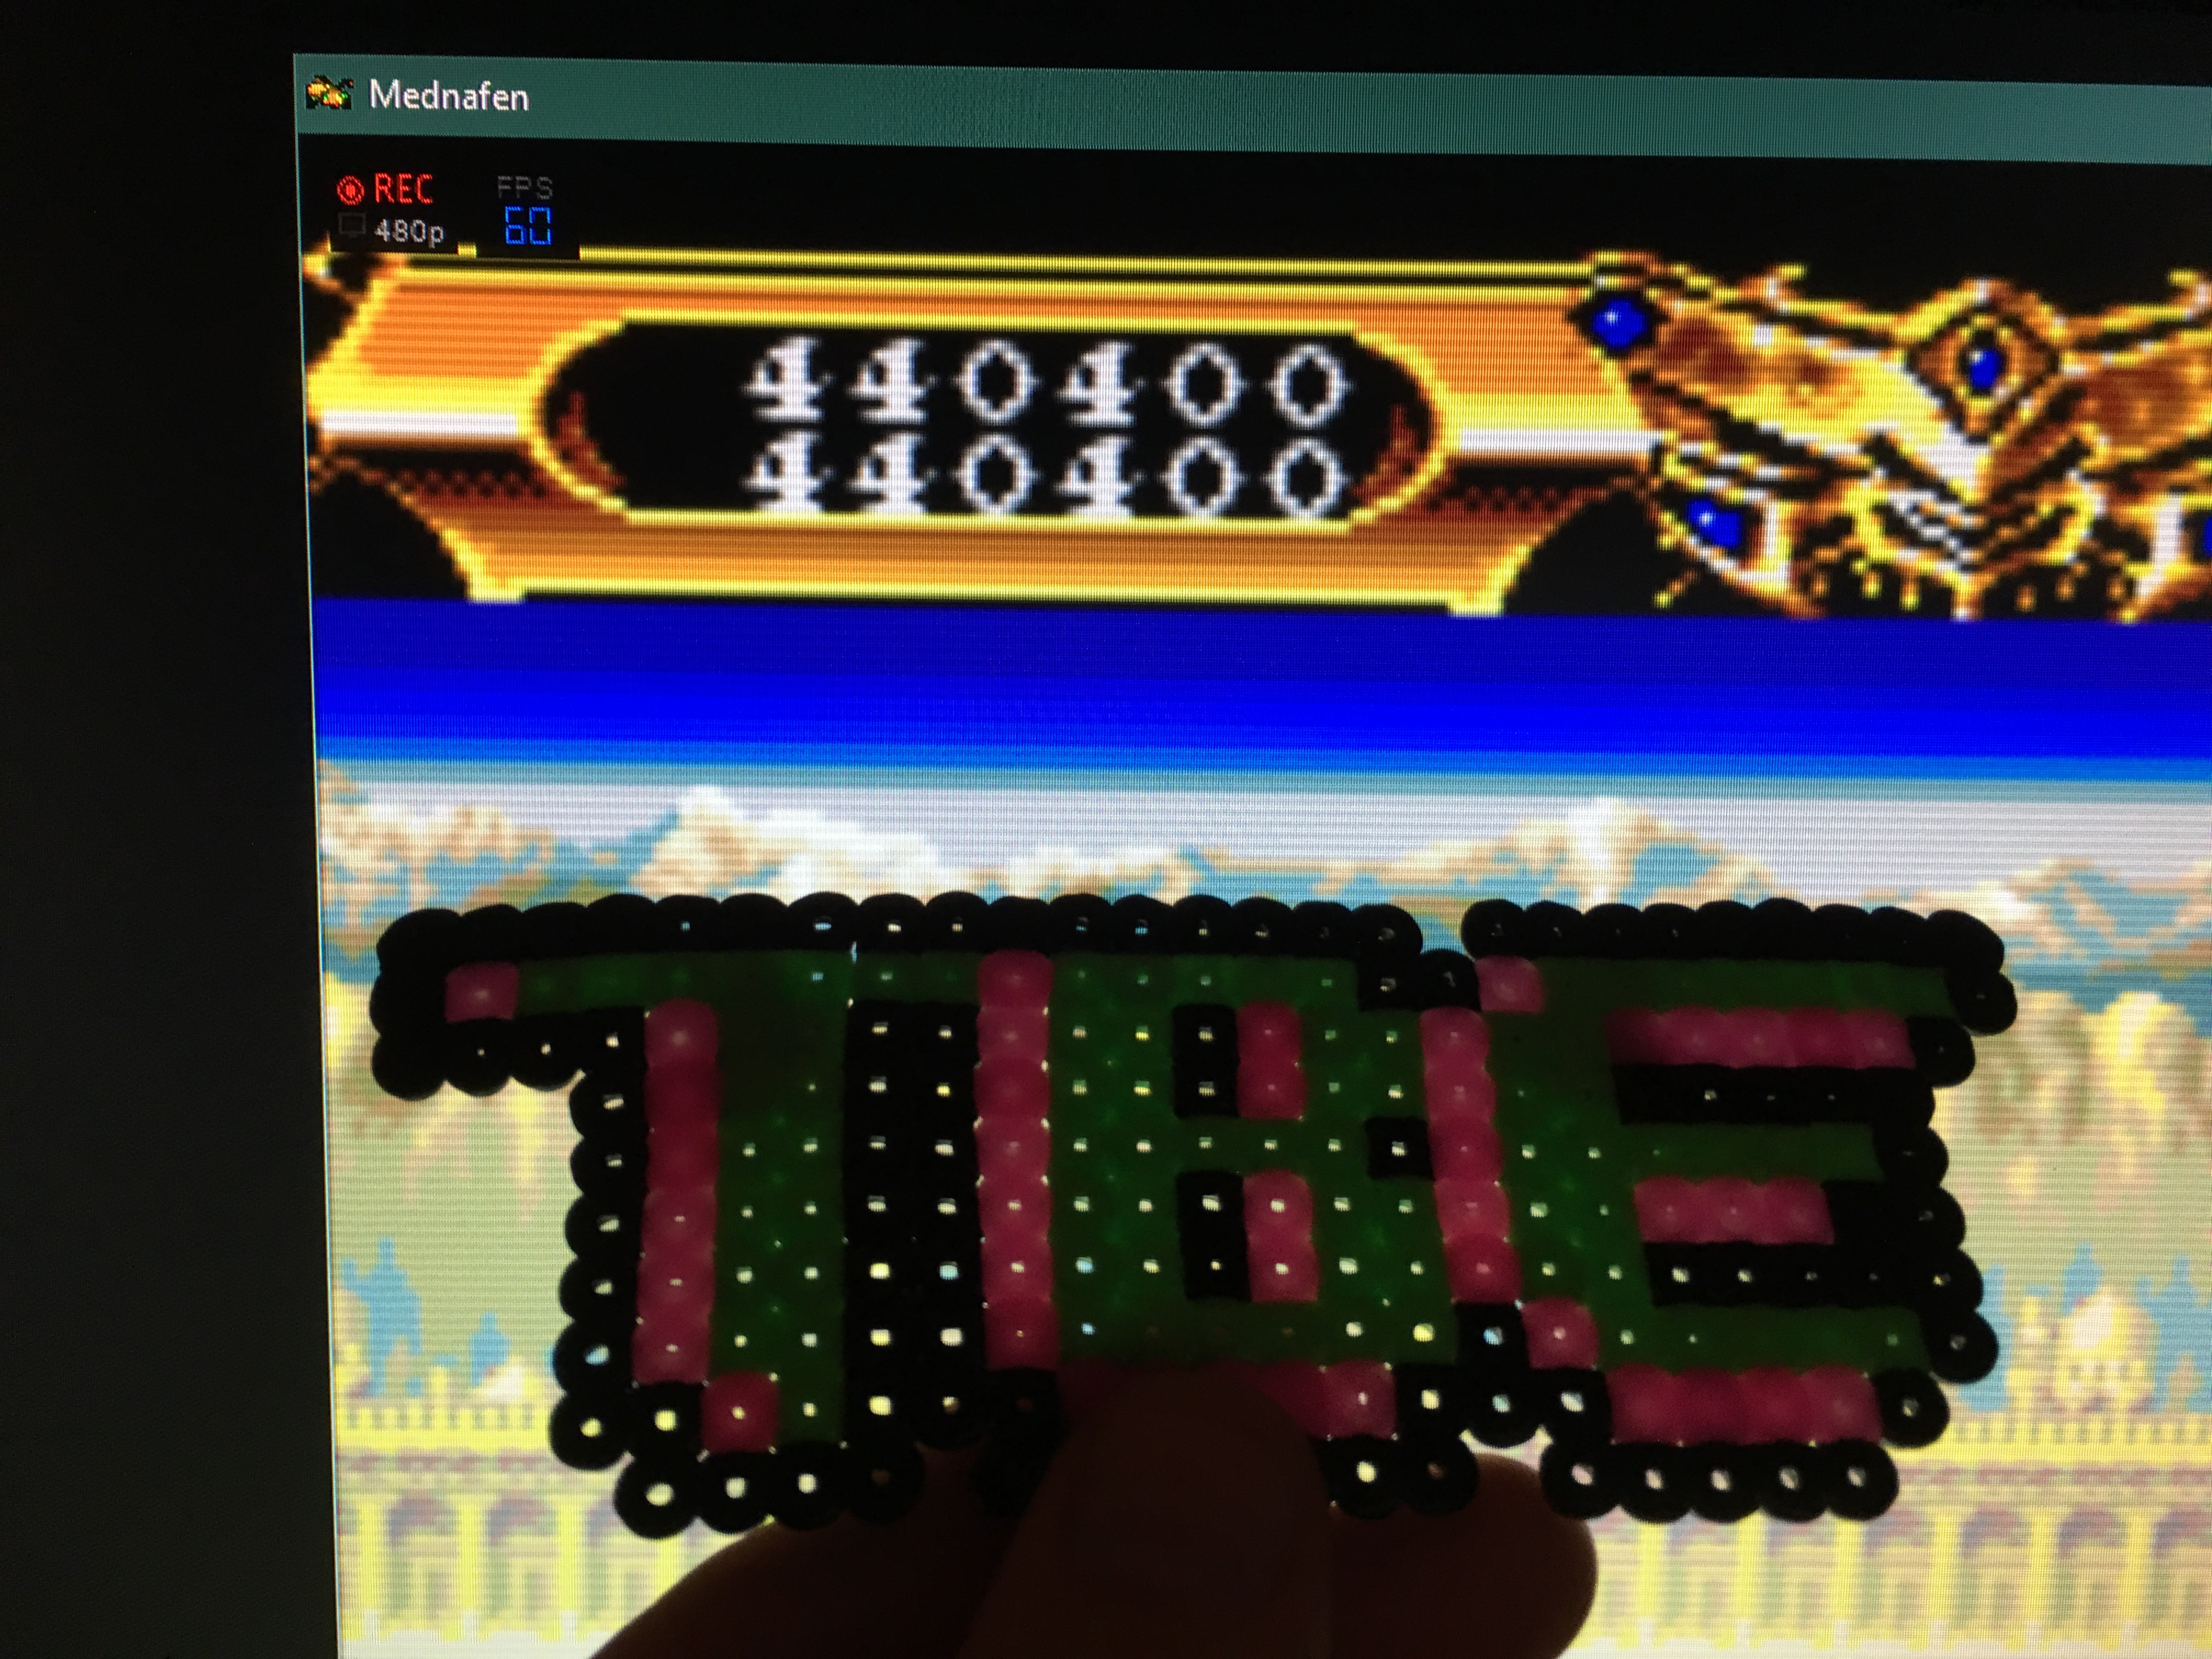 Sixx: Lords of Thunder: Normal (TurboGrafx-16/PC Engine Emulated) 440,400 points on 2016-07-01 20:32:04